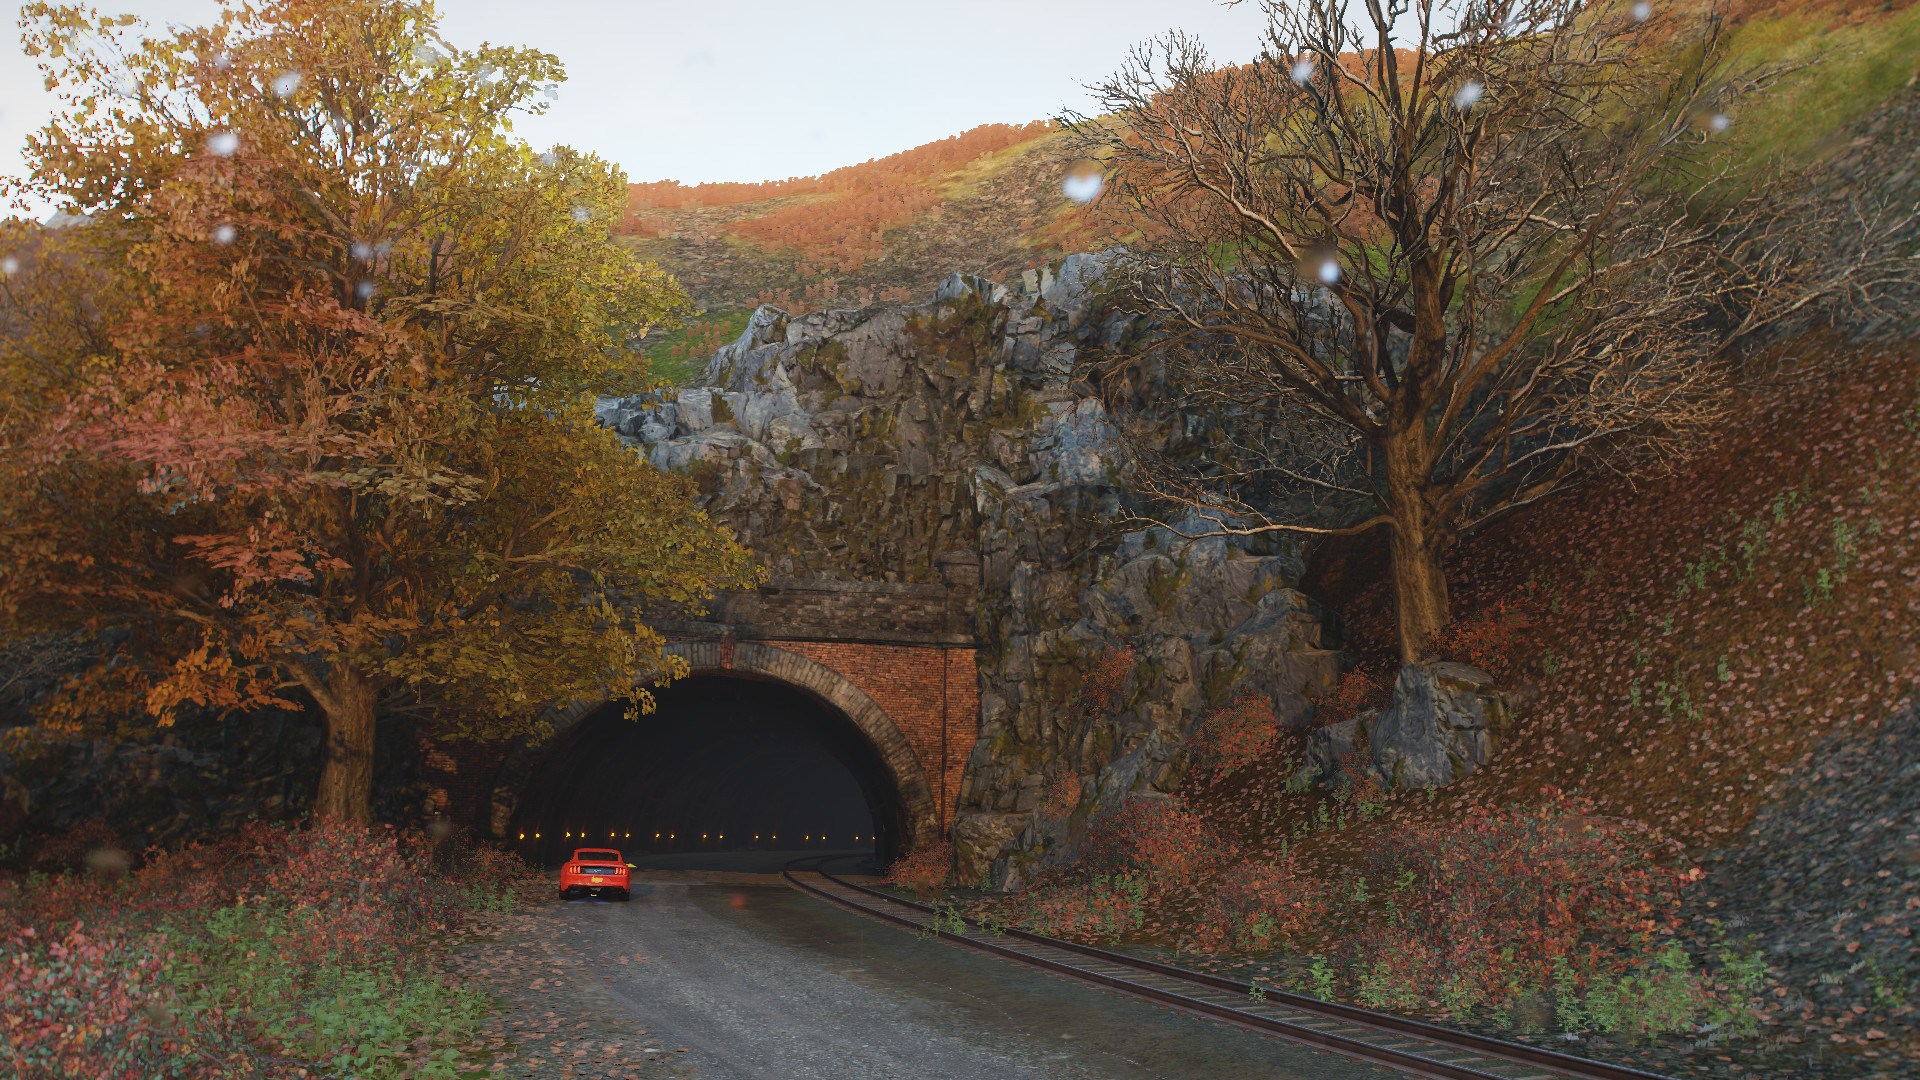 Stefan oprisan forza horizon 4 screenshot 2018 11 17 16 04 03 93